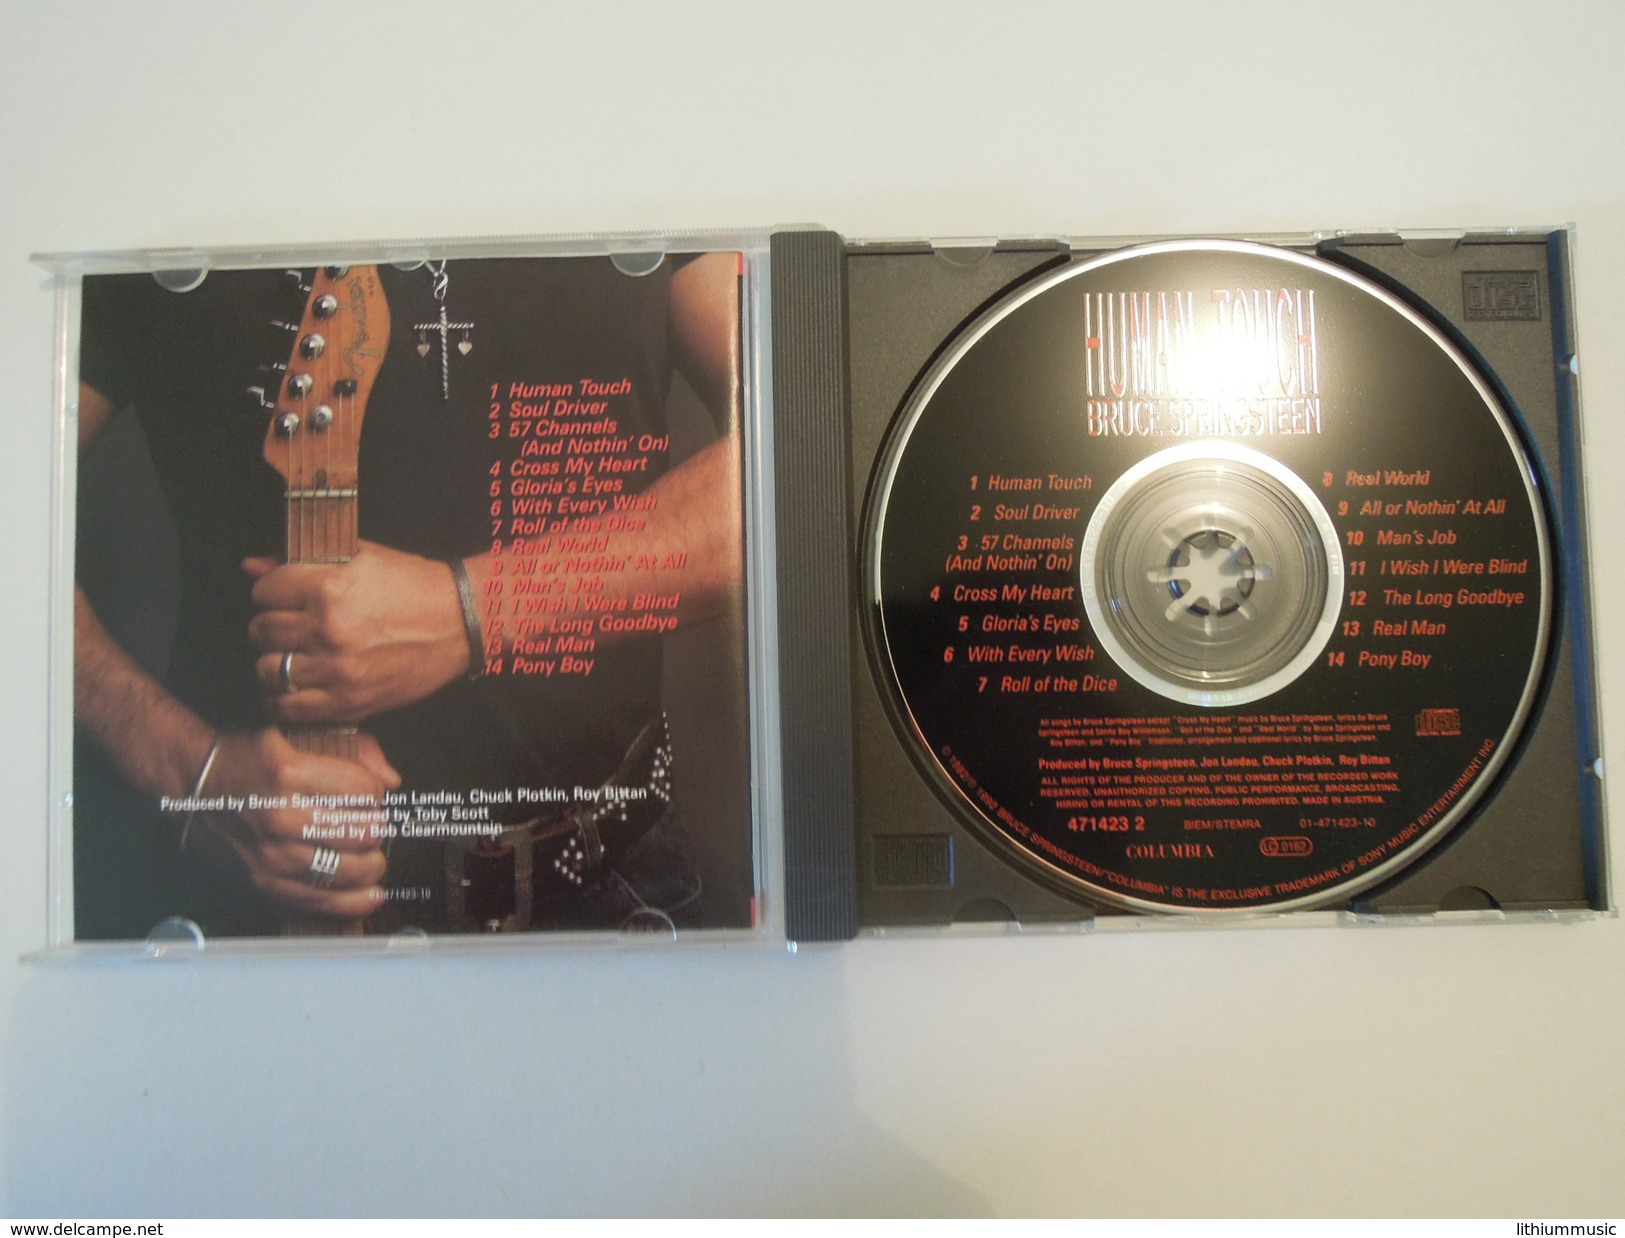 Bruce Springsteen  -  Human Touch - Columbia Col 471423 2 Austria - Country & Folk